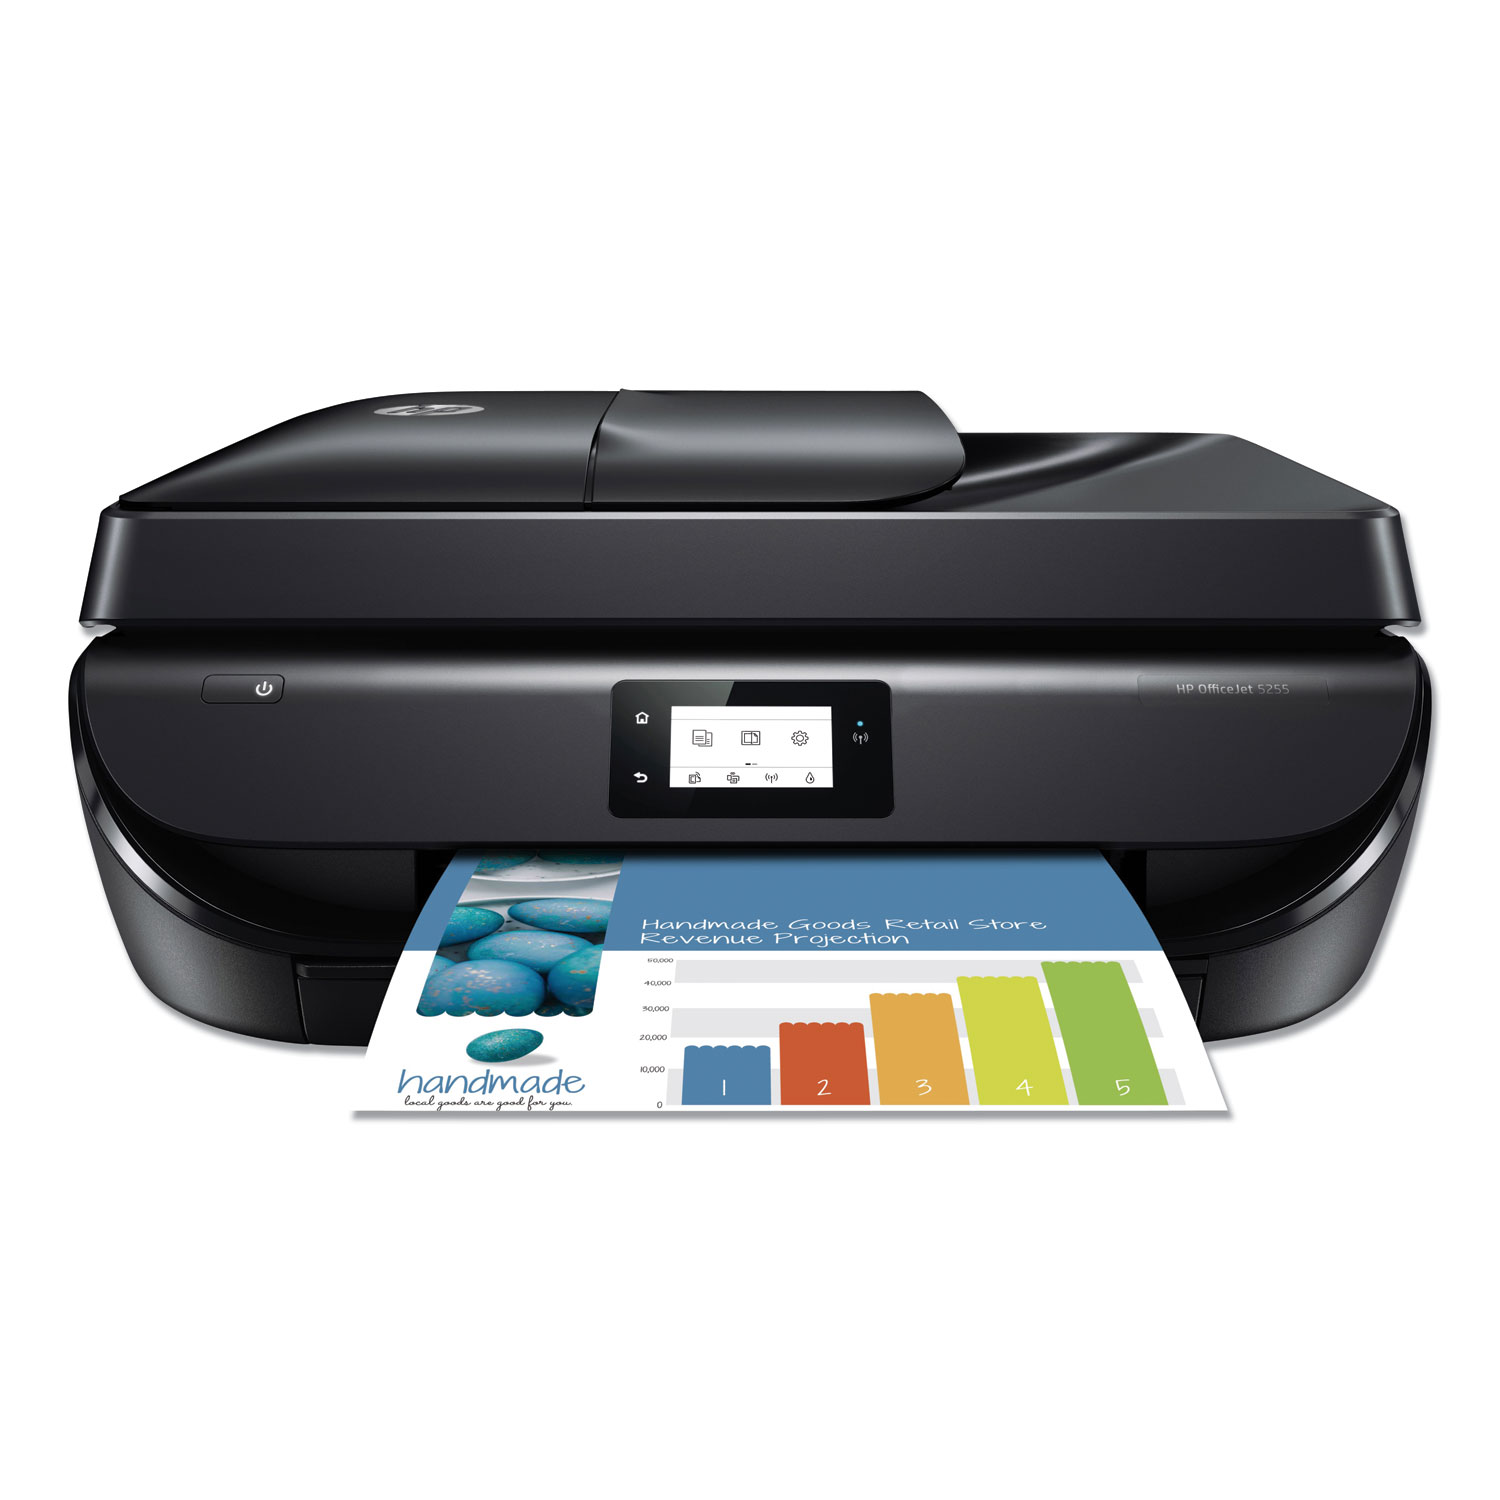 Officejet 5255 All-in-One Printer, Copy/Fax/Print/Scan